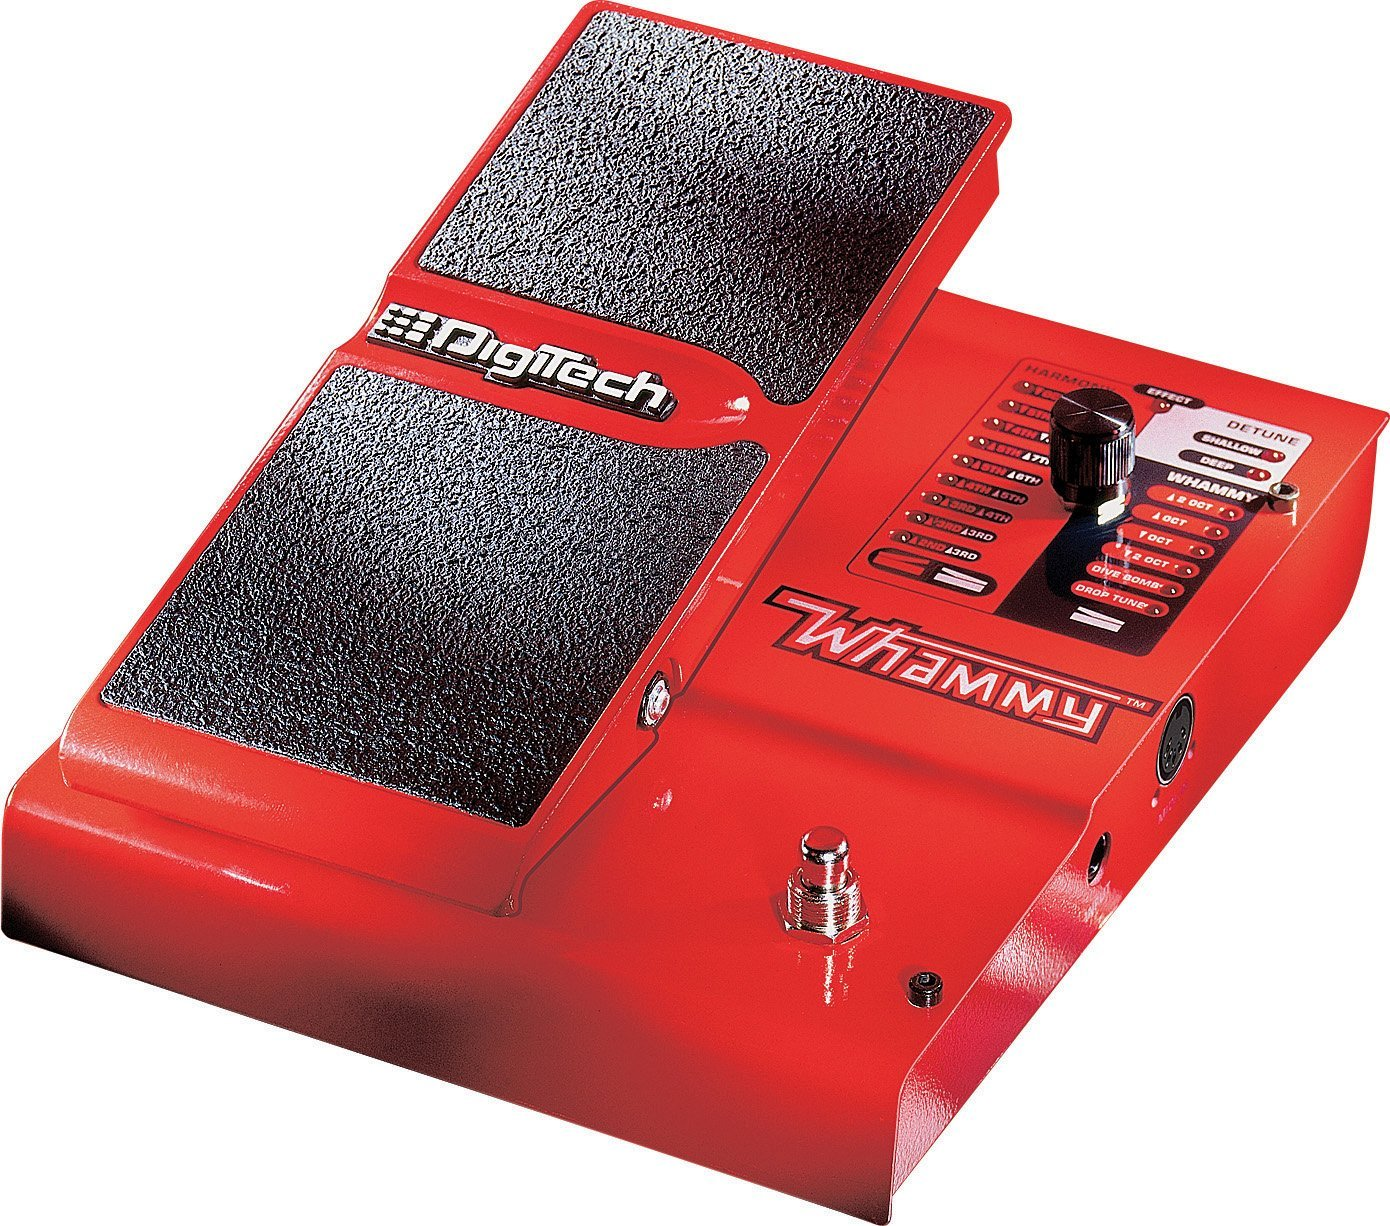 Digitech - Whammy